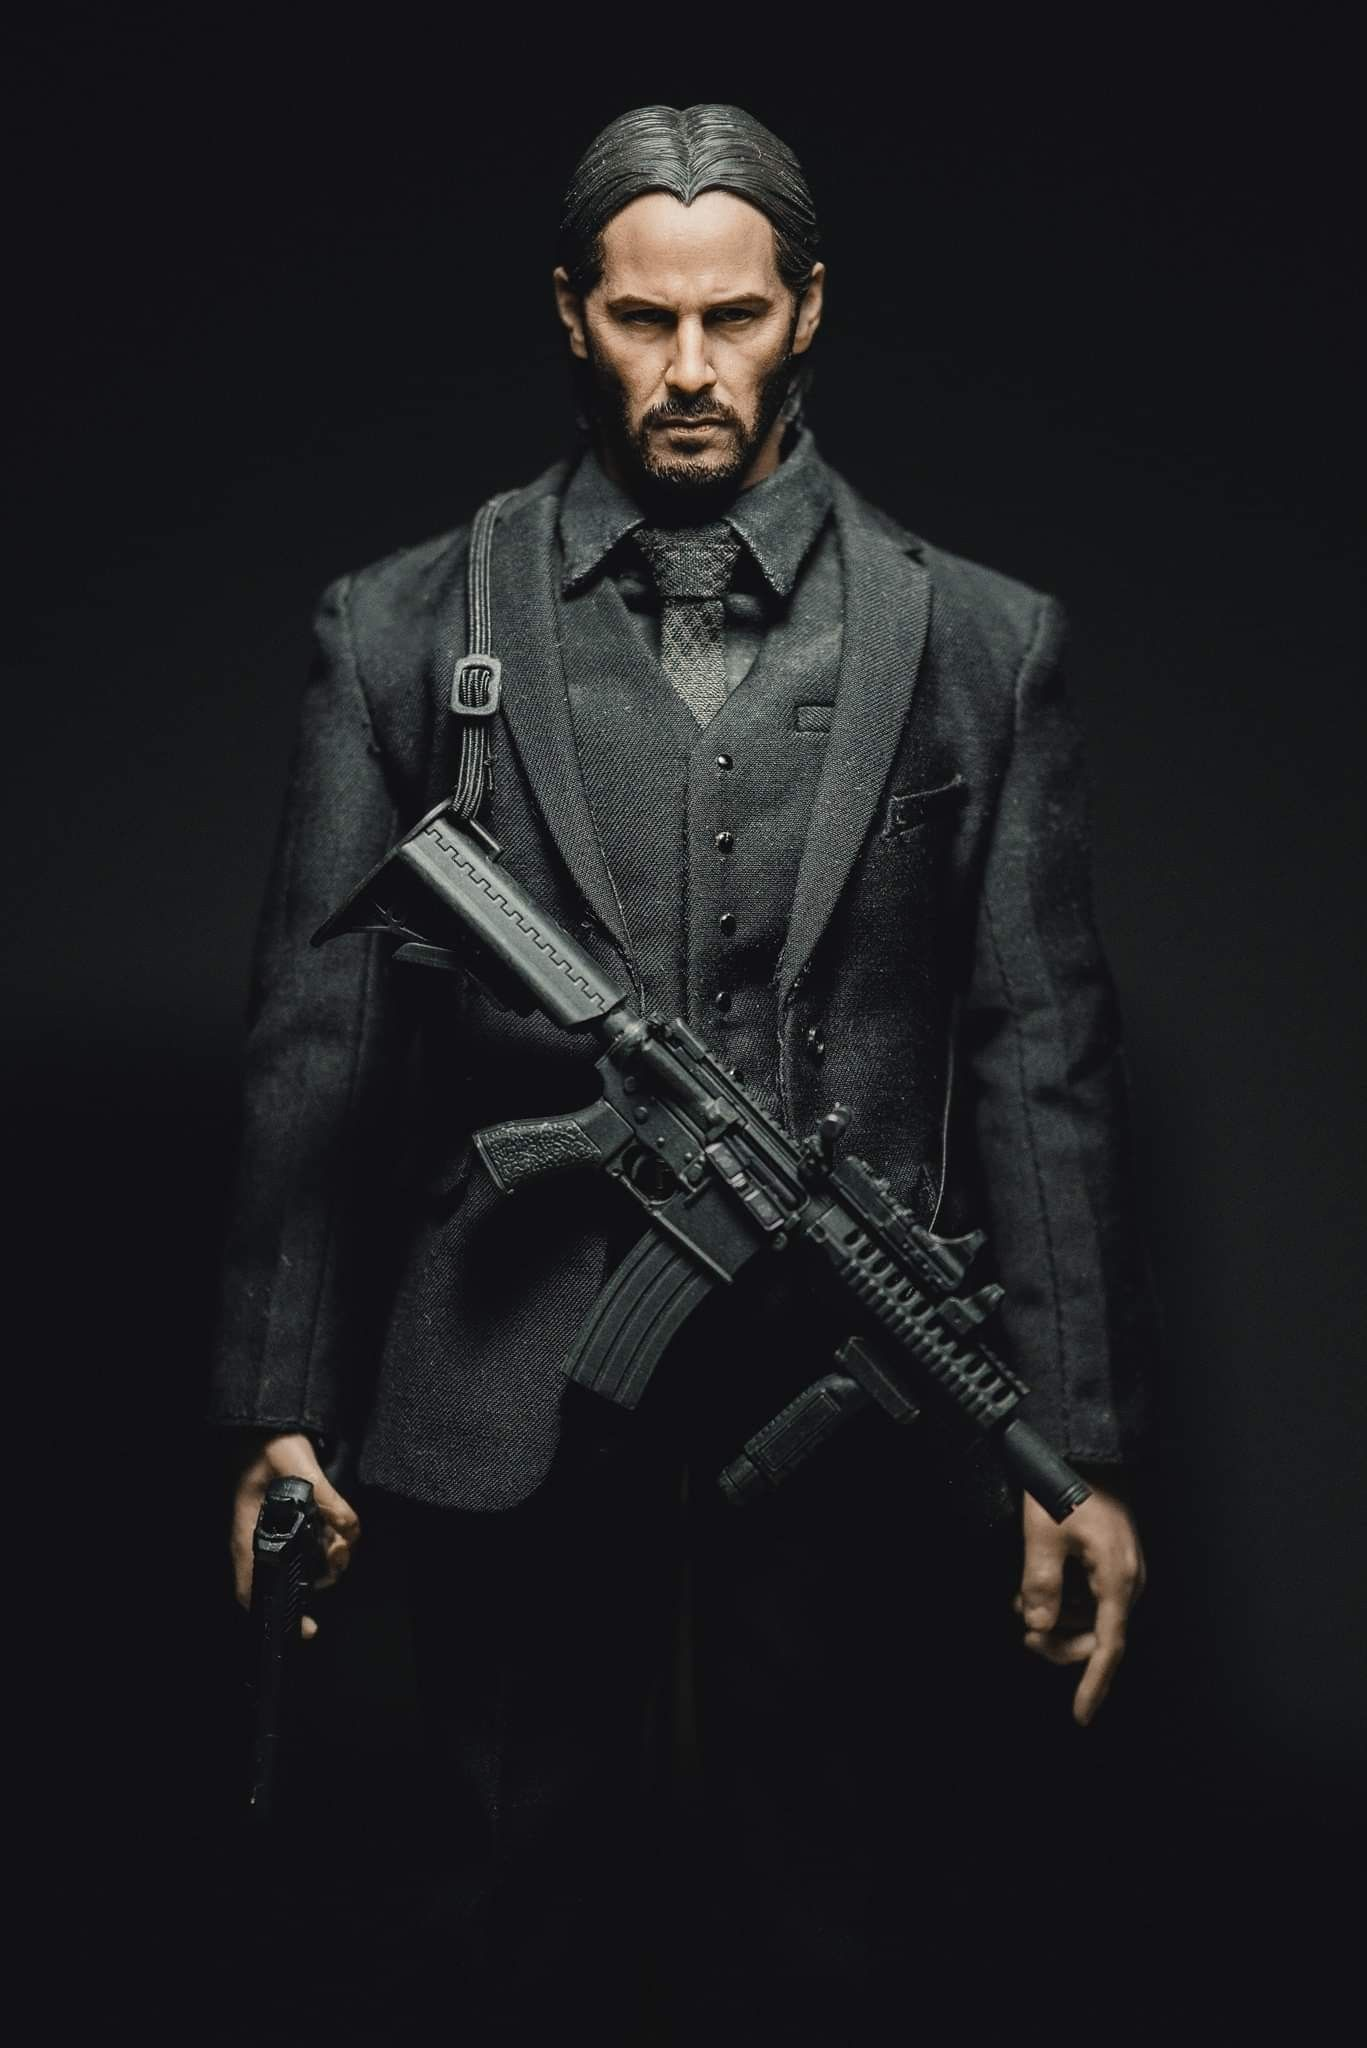 Pin By Toyztactic On 1 6 Scale Kustoms John Wick Movie Keanu Reeves Keanu Reeves John Wick